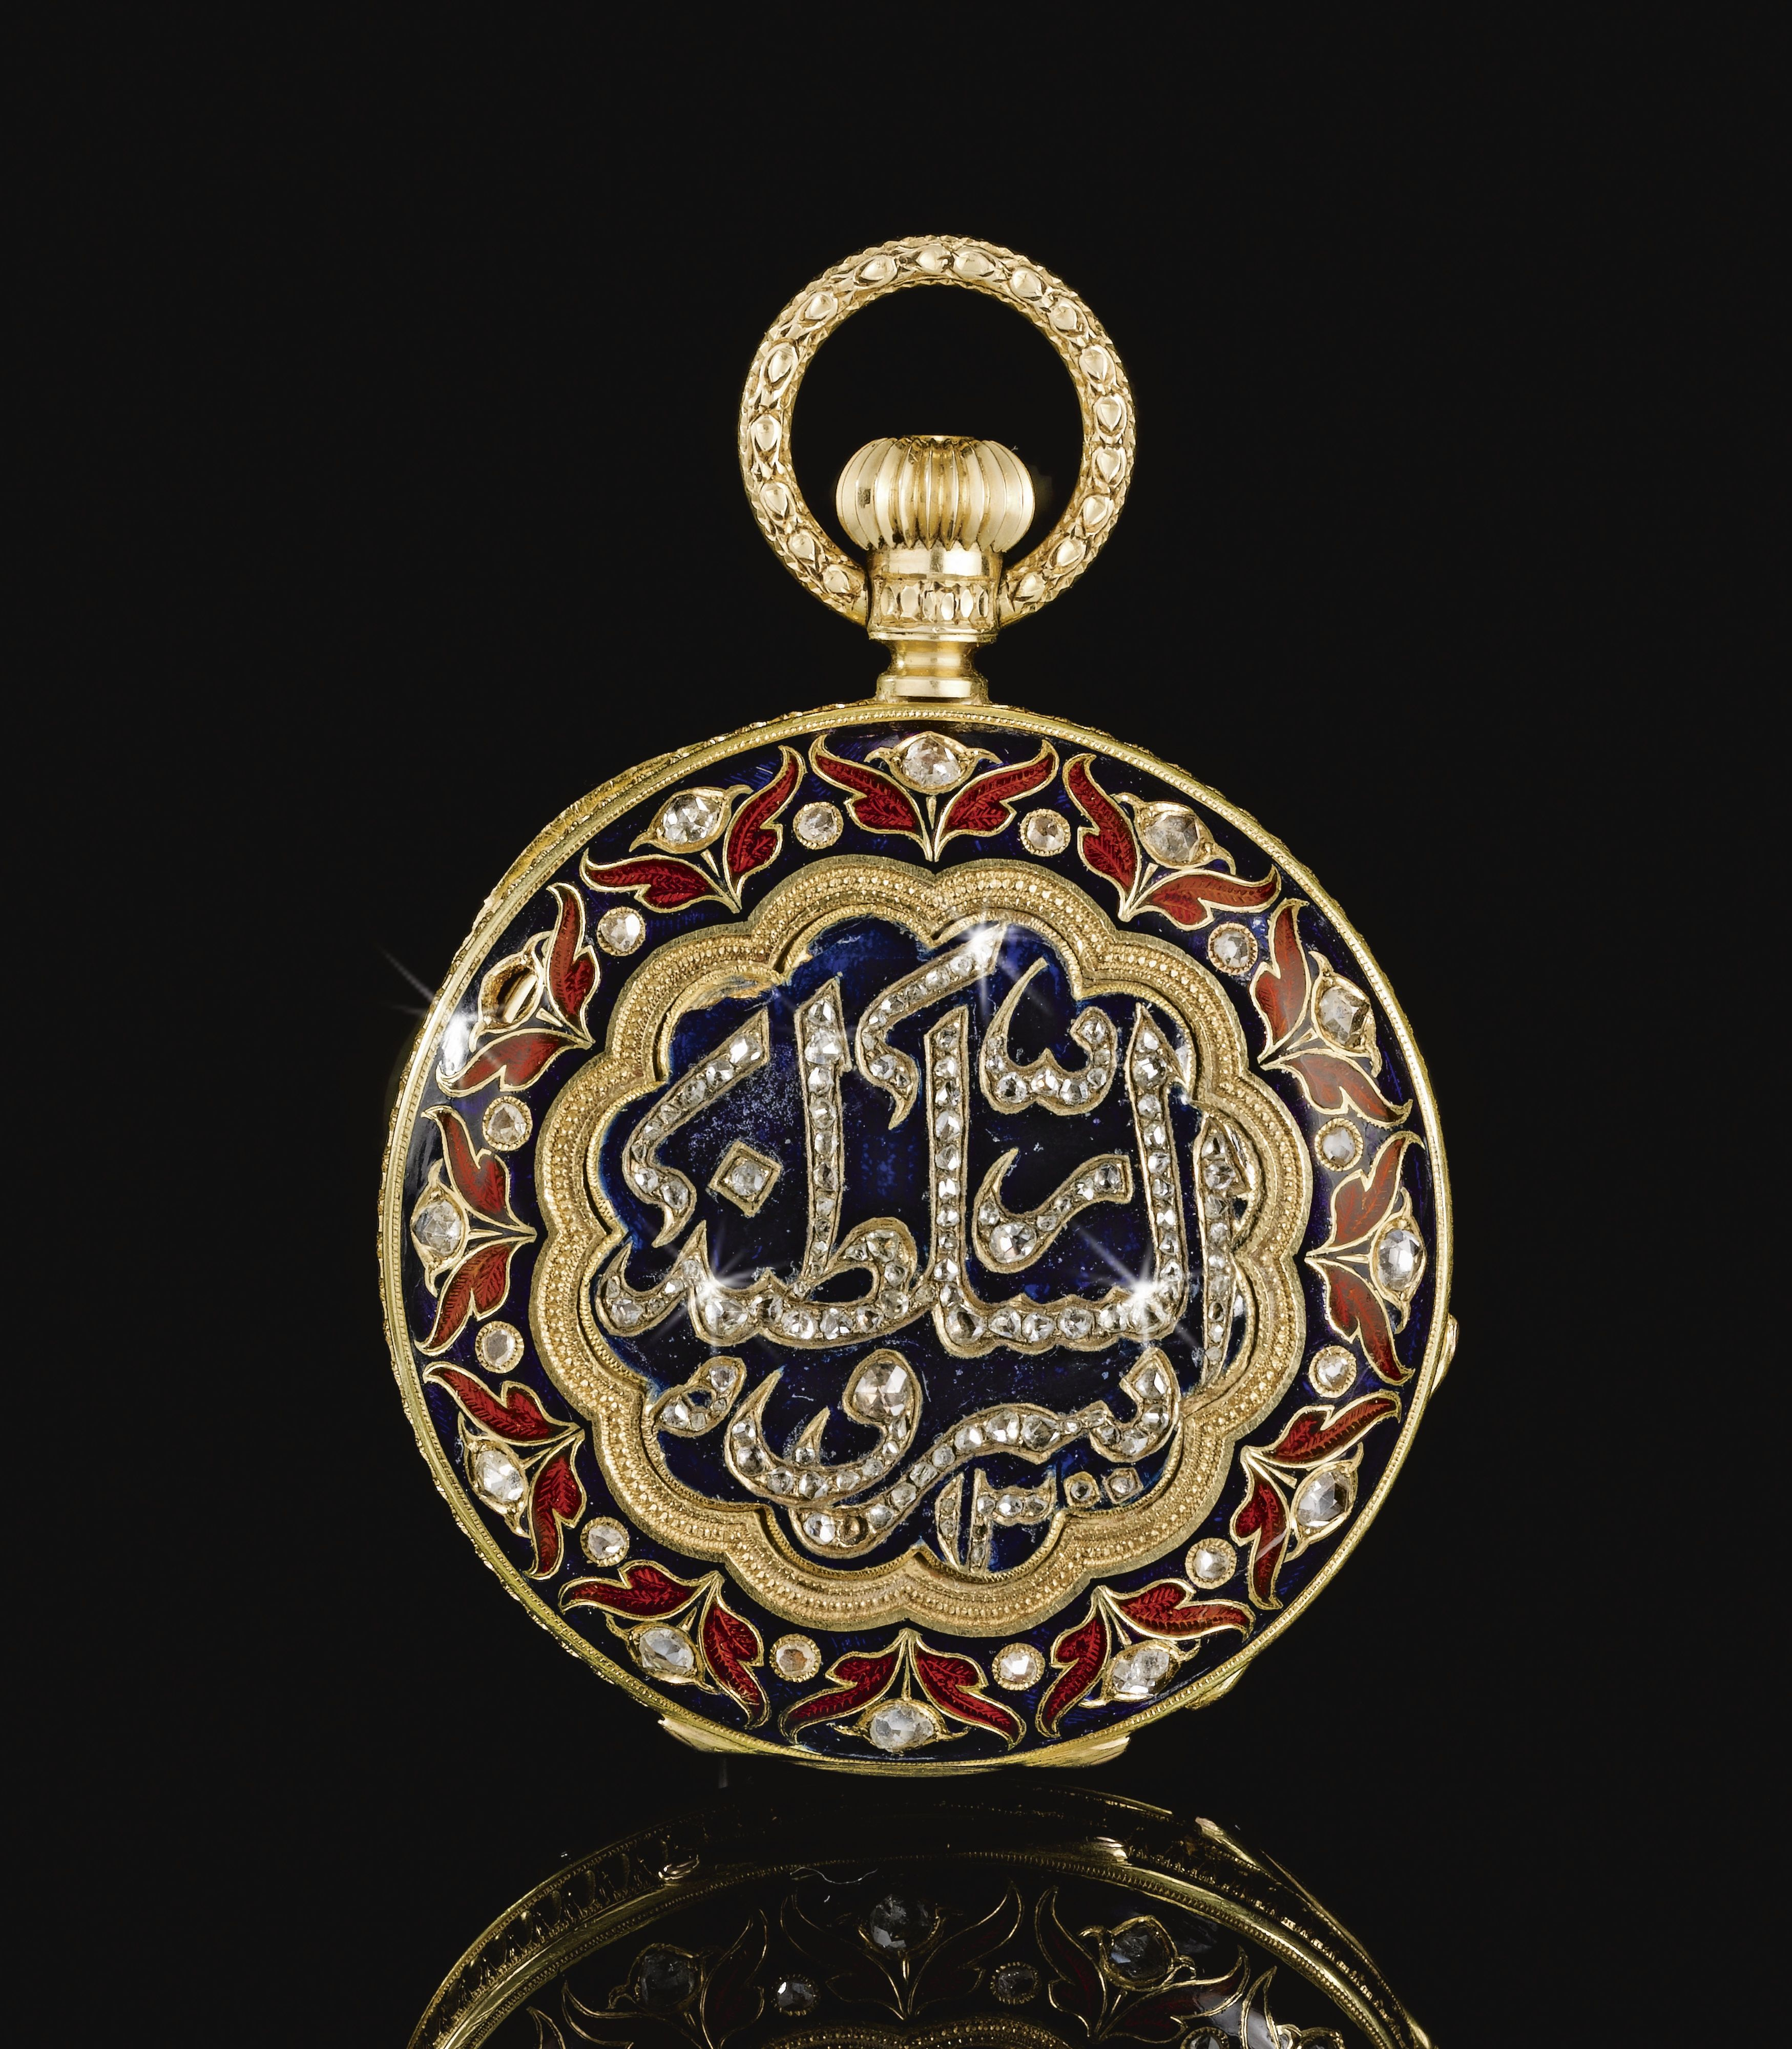 A PATEK PHILLIPPE POCKET-WATCH MADE FOR THE ISLAMIC MARKET DATED 1300 AH/1882 AD, SWITZERLAND the round white enamel dial with Roman numerals, blue steel hour, minute hands, secondary dial, the gilt-metal case engraved and decorated with lapis blue and carnelian red enamels and set with cut-diamonds, each side with a central cusped medallion enclosing a monumental inscription encircled by a border of tulip plants